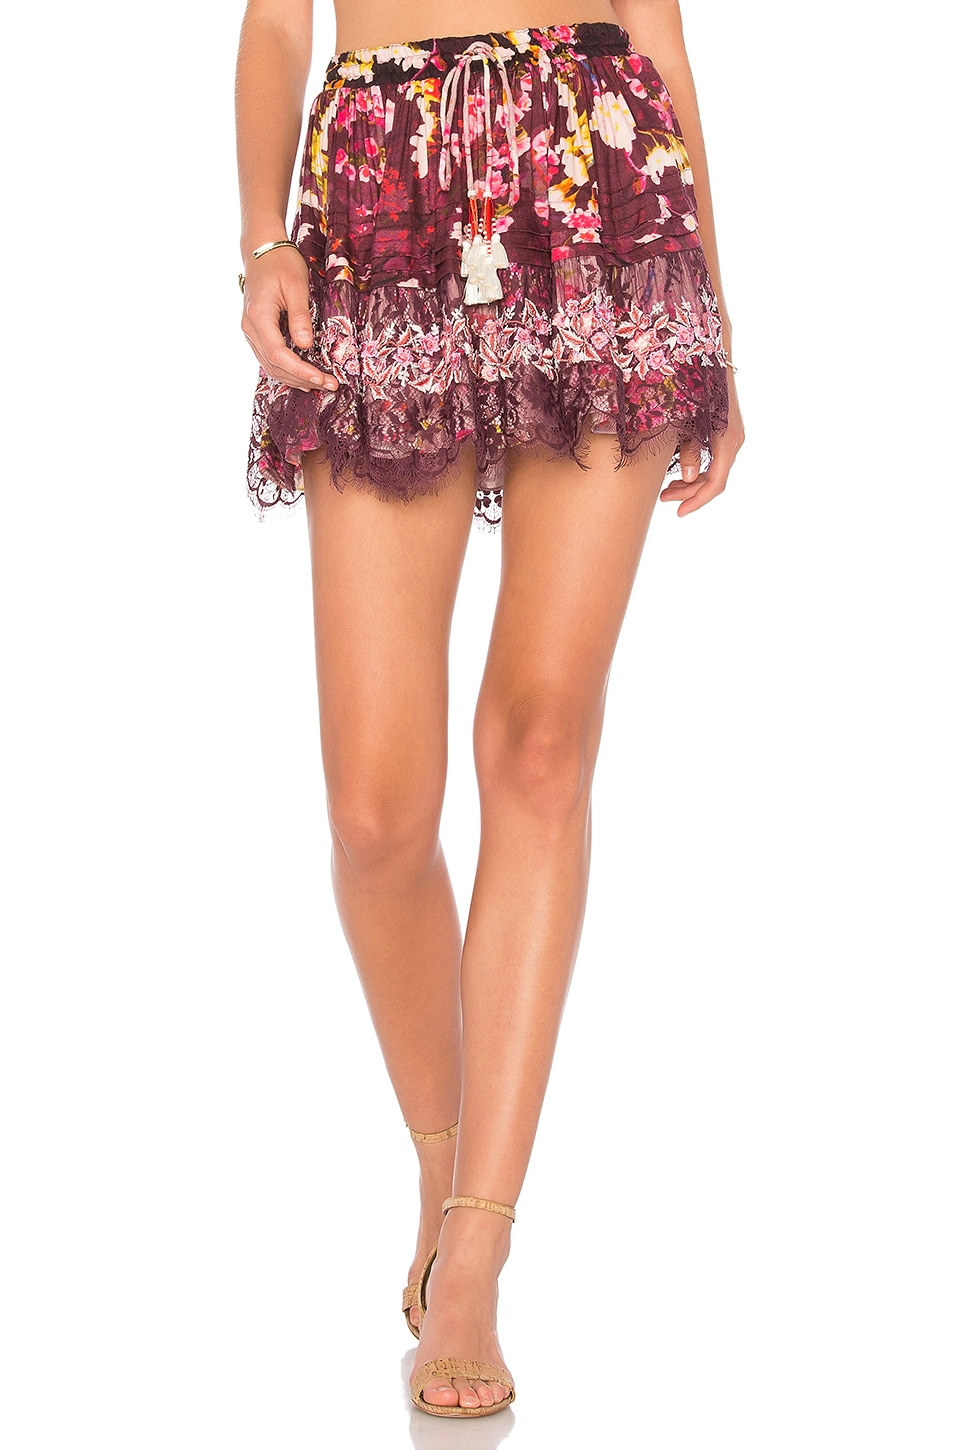 Floral Skirt by Rococo Sand